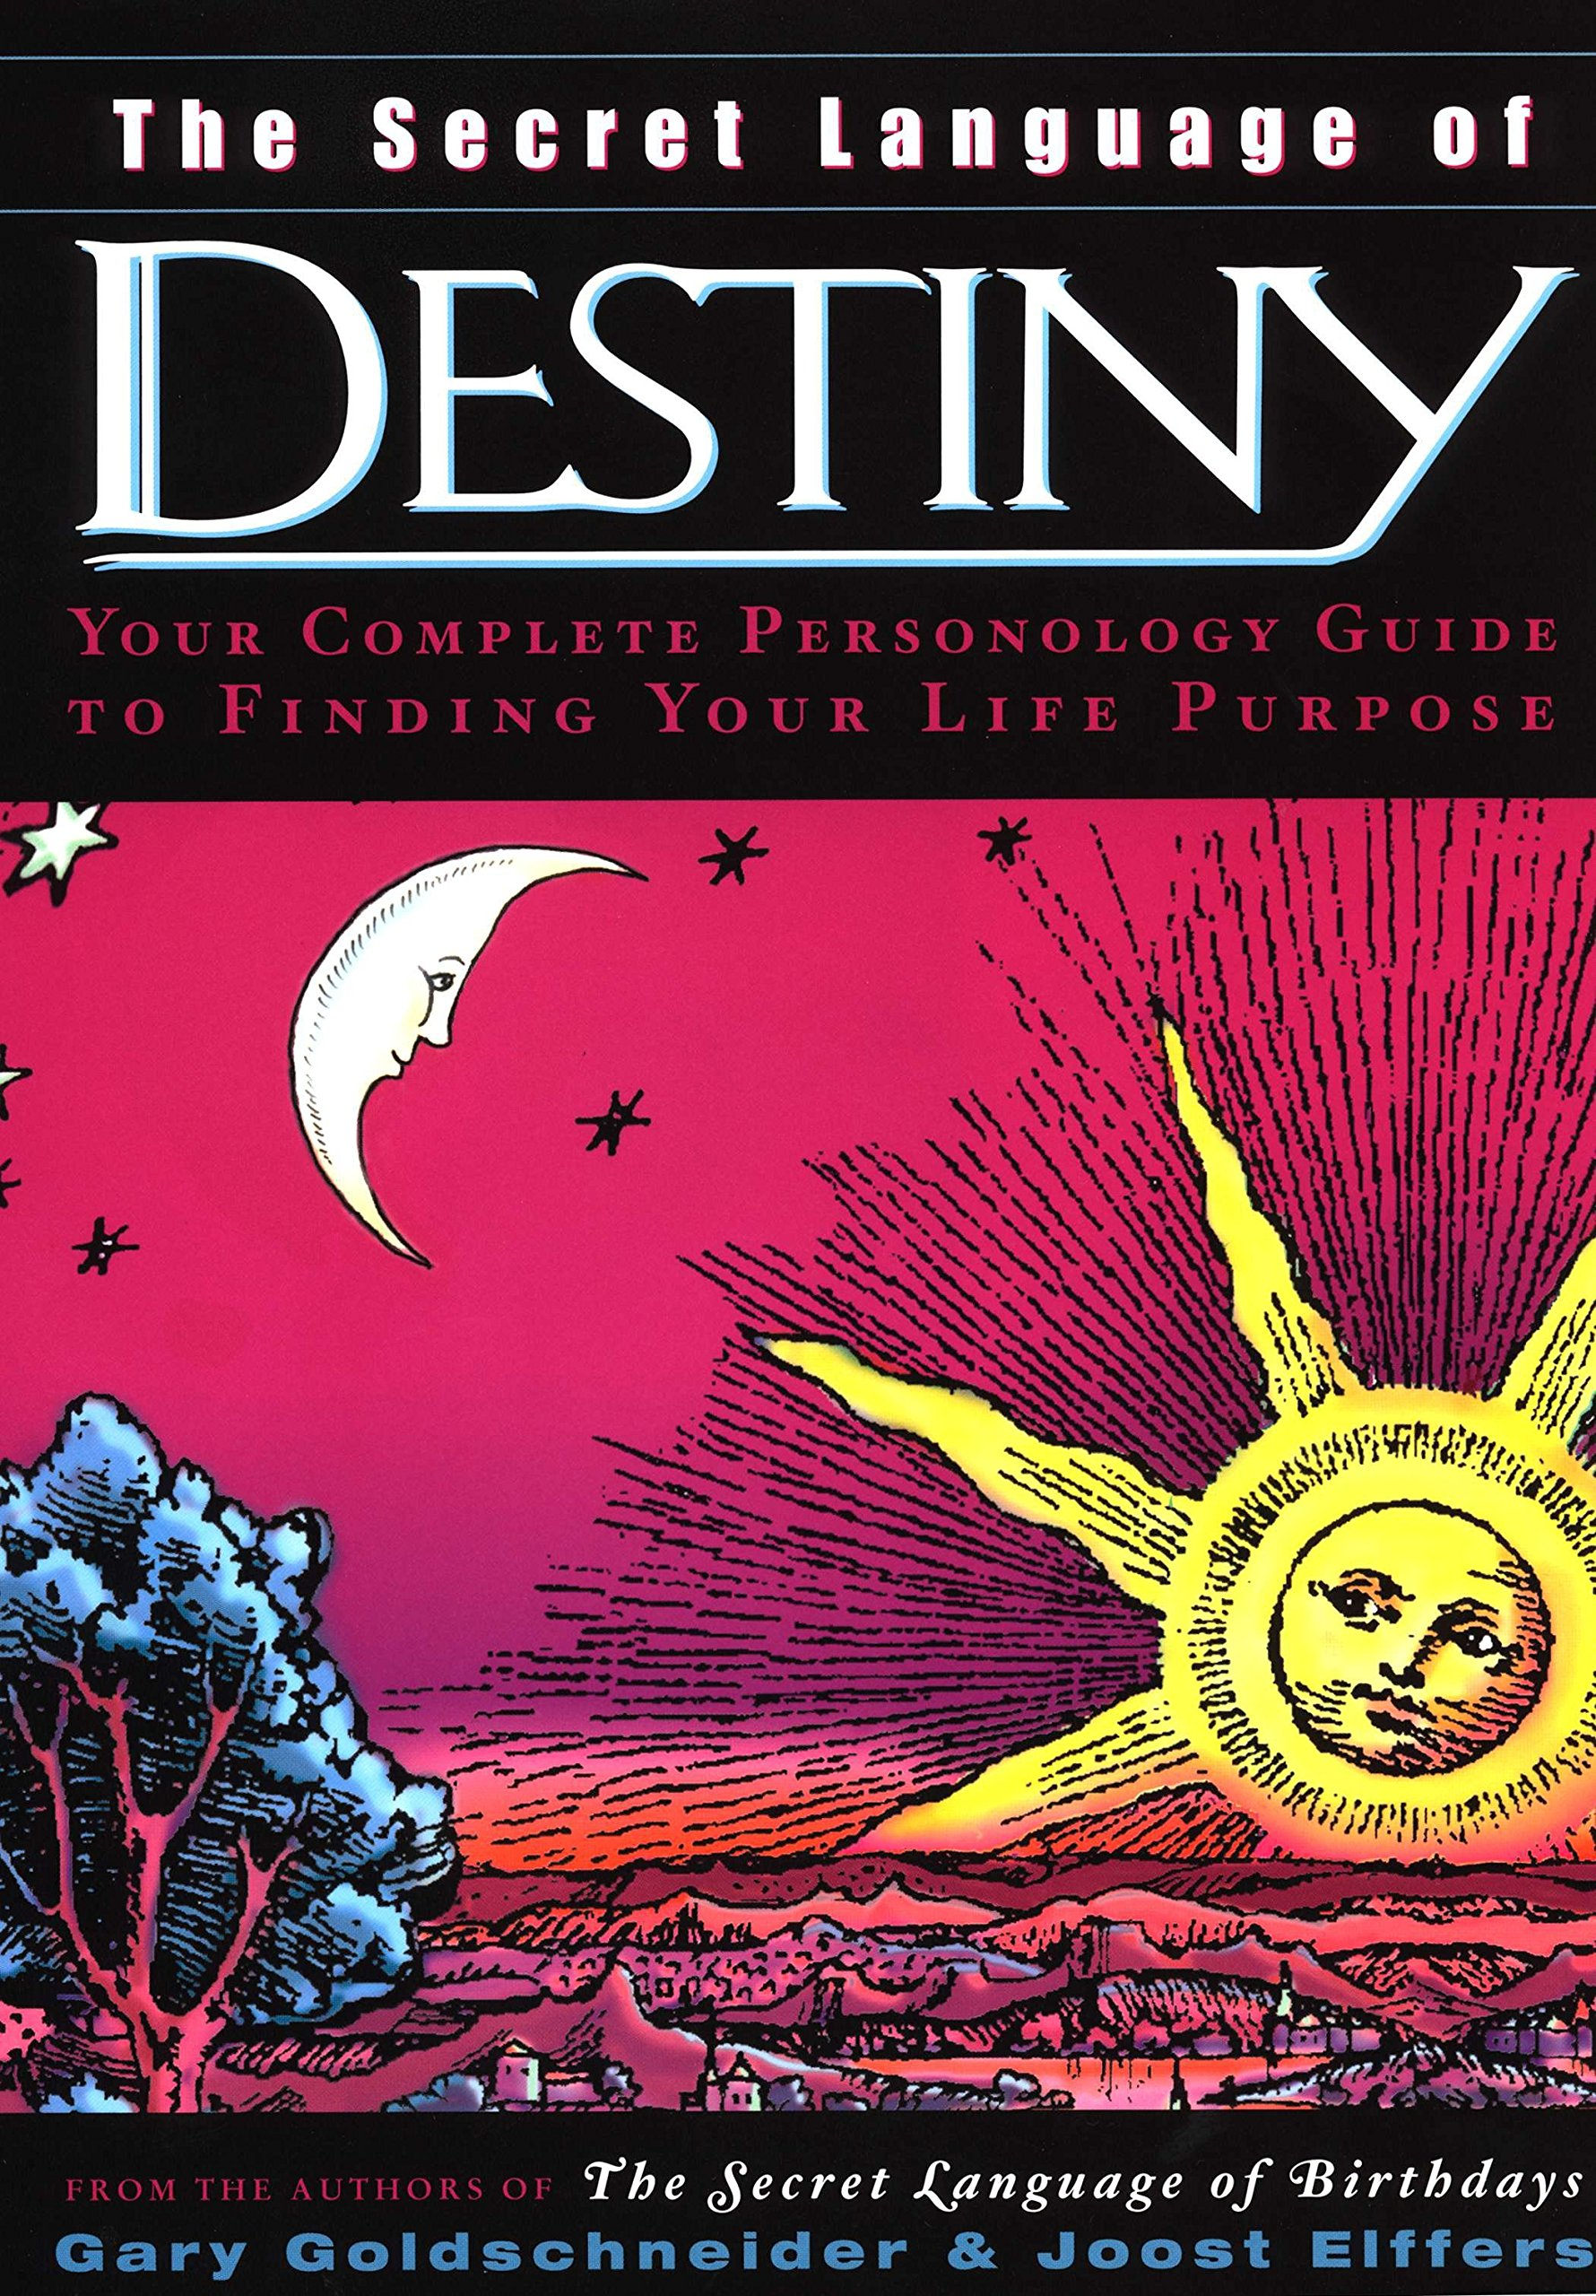 The Secret Language of Destiny: A Complete Personology Guide to Finding Your Life Purpose by Viking Studio